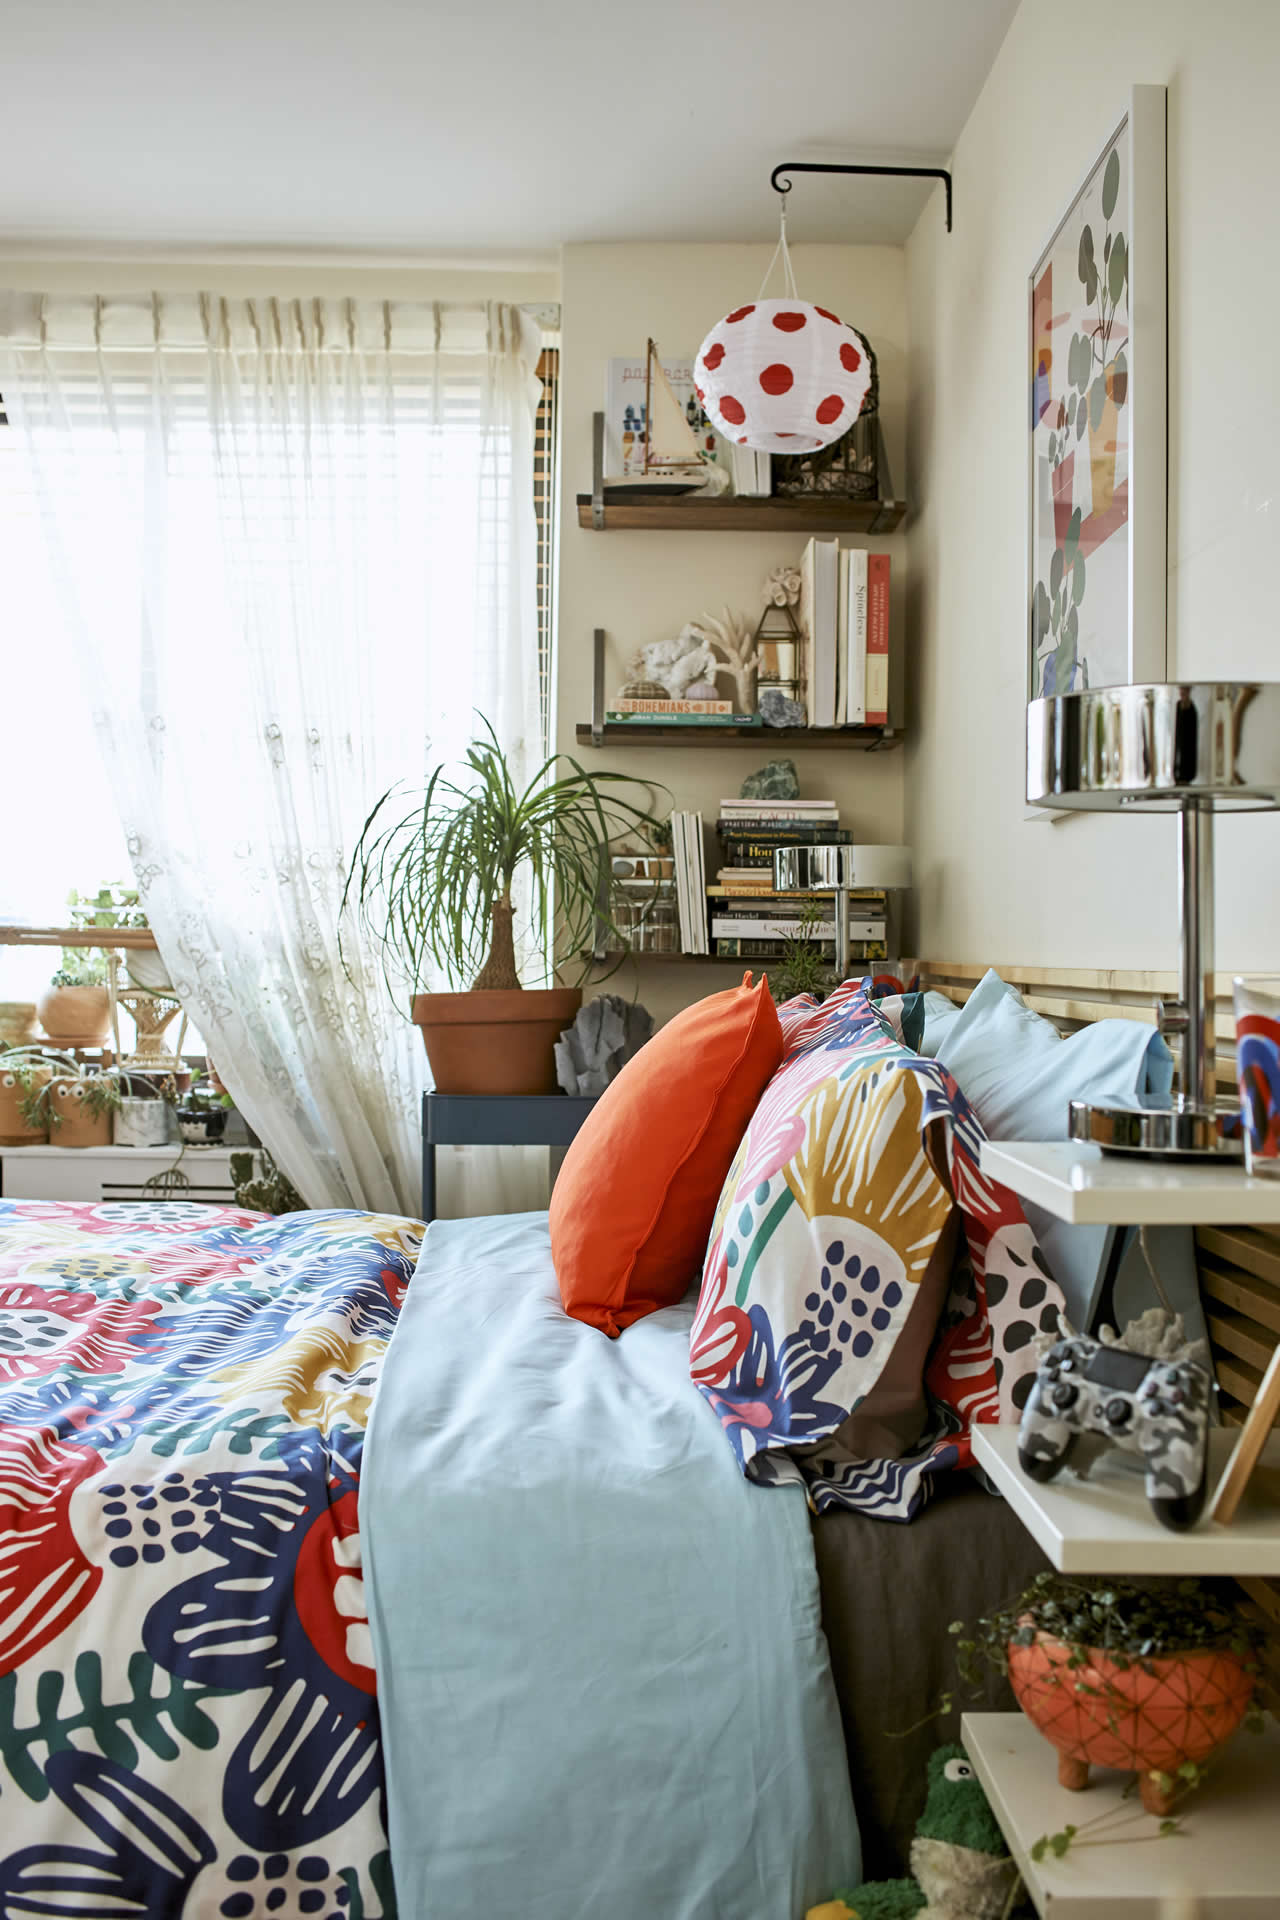 IKEA Ideas - Ideas to live big in a small space